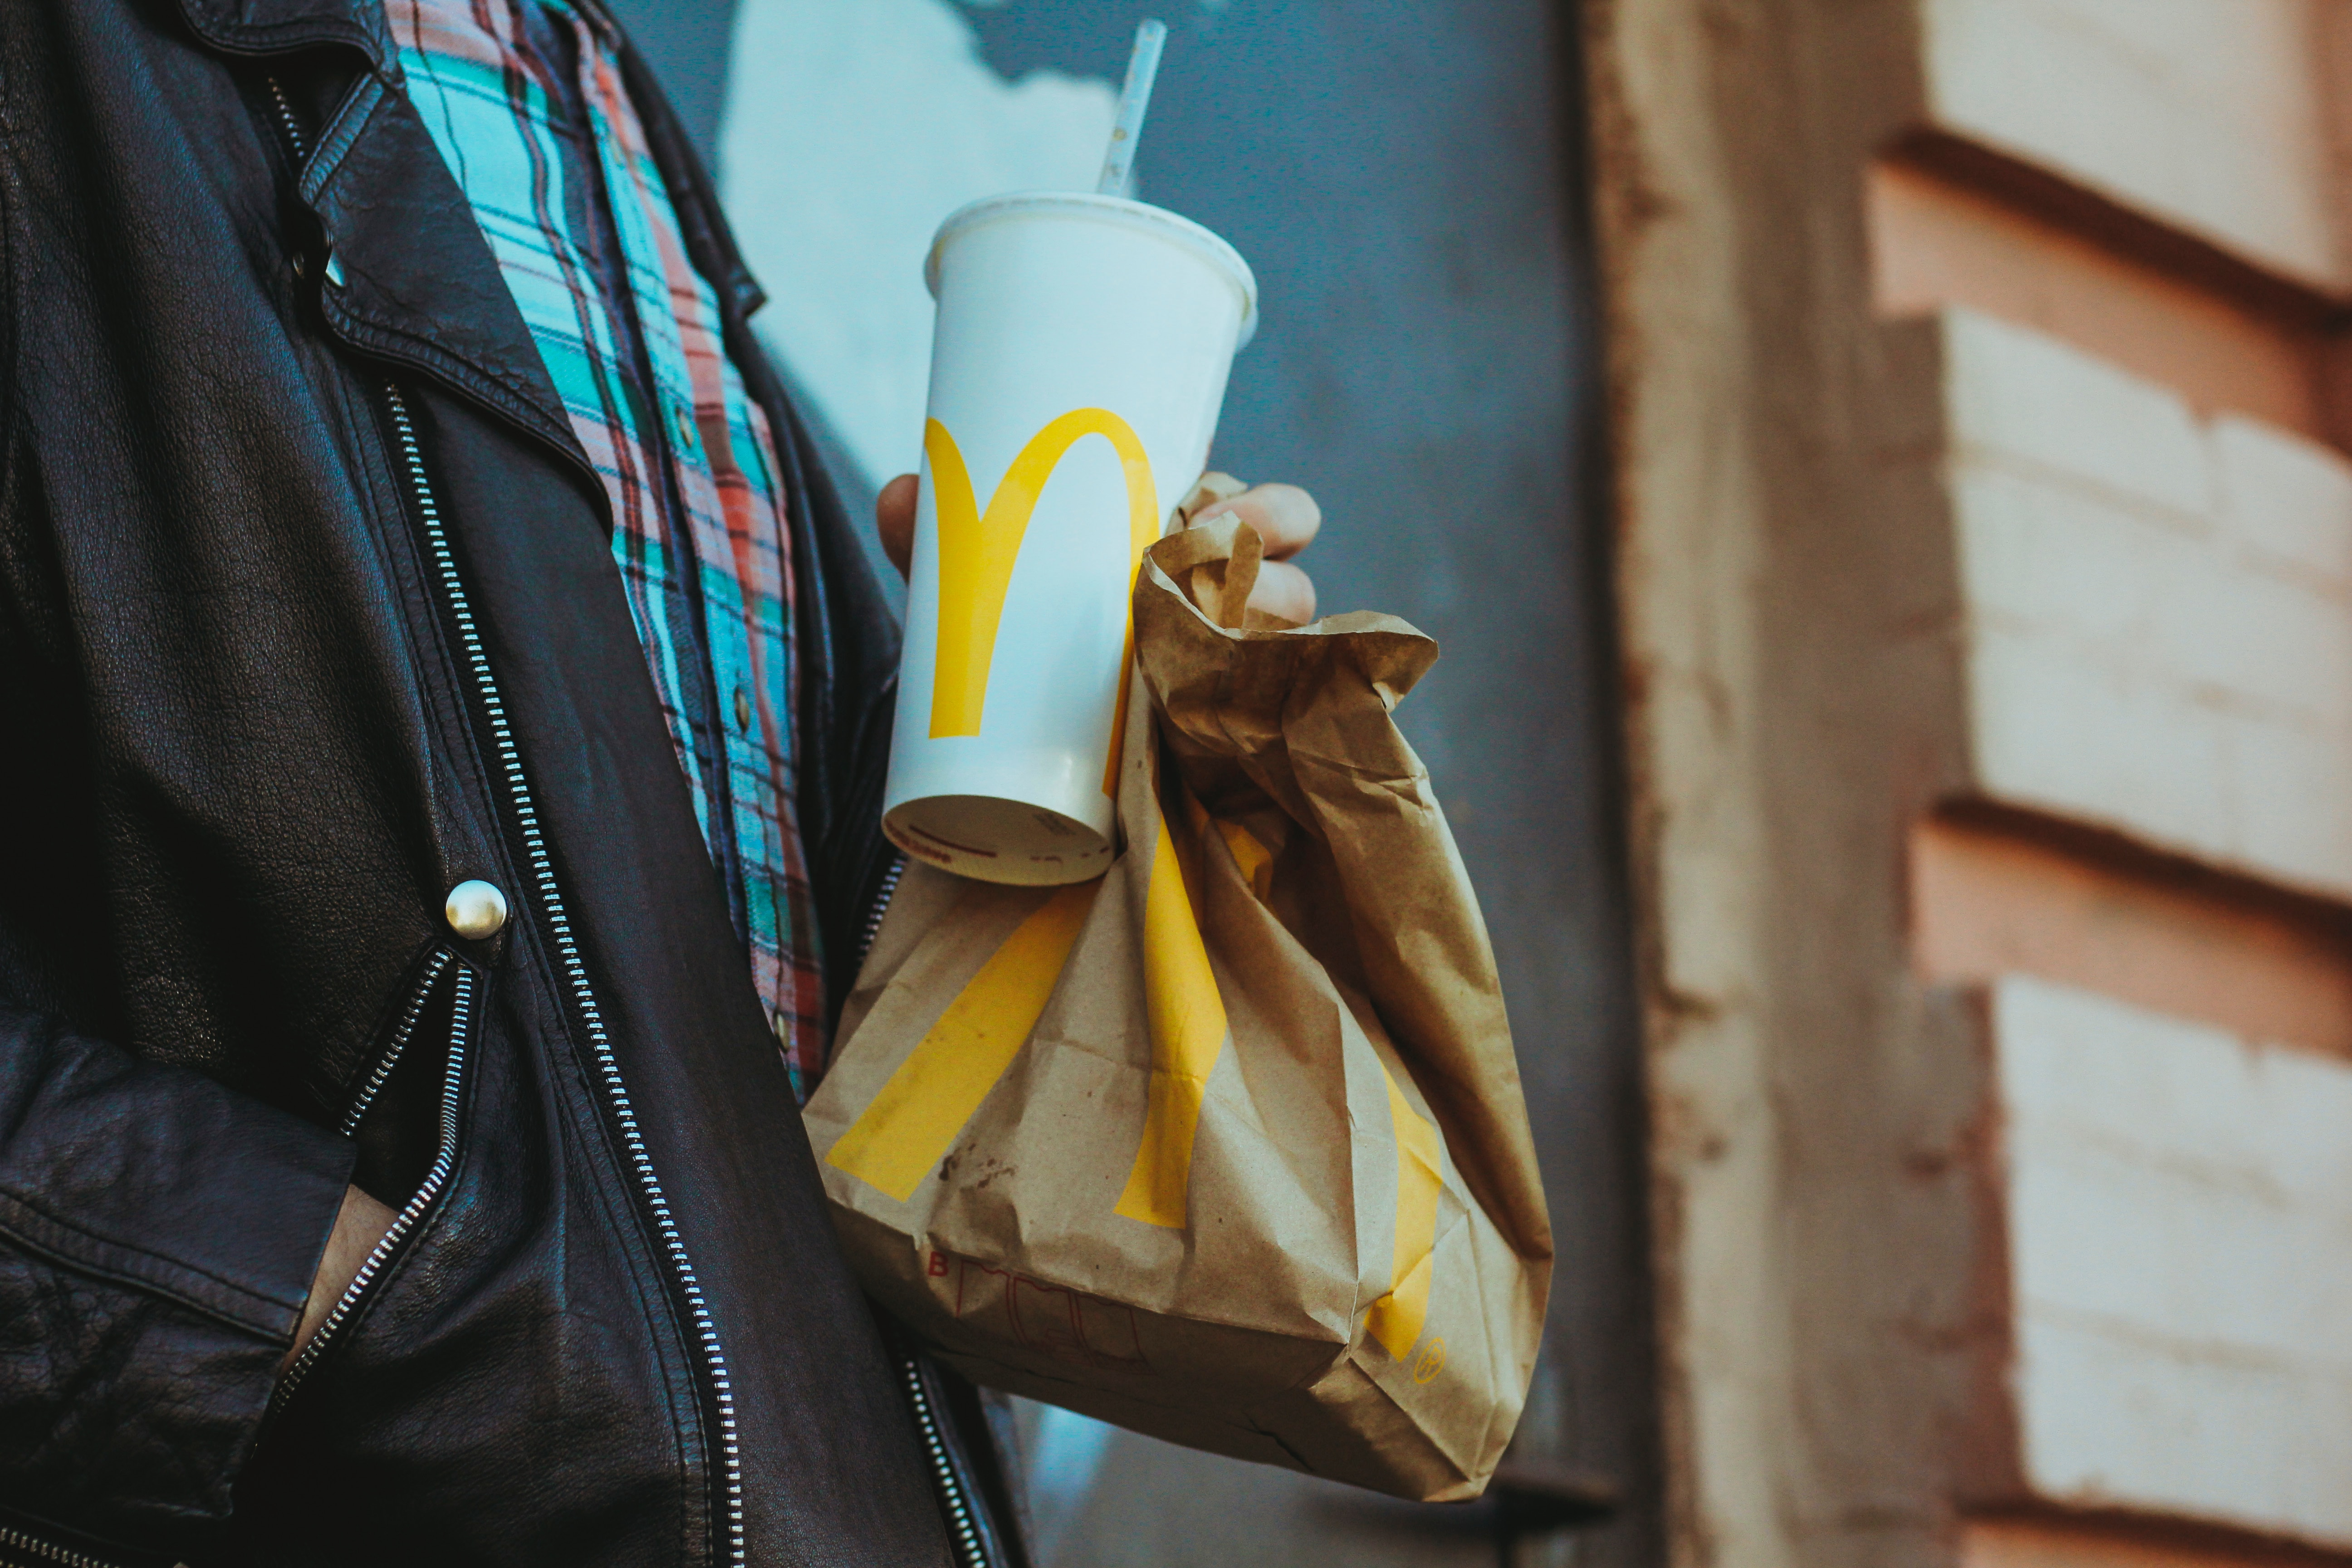 close up of person holding mcdonalds bag and drink cup